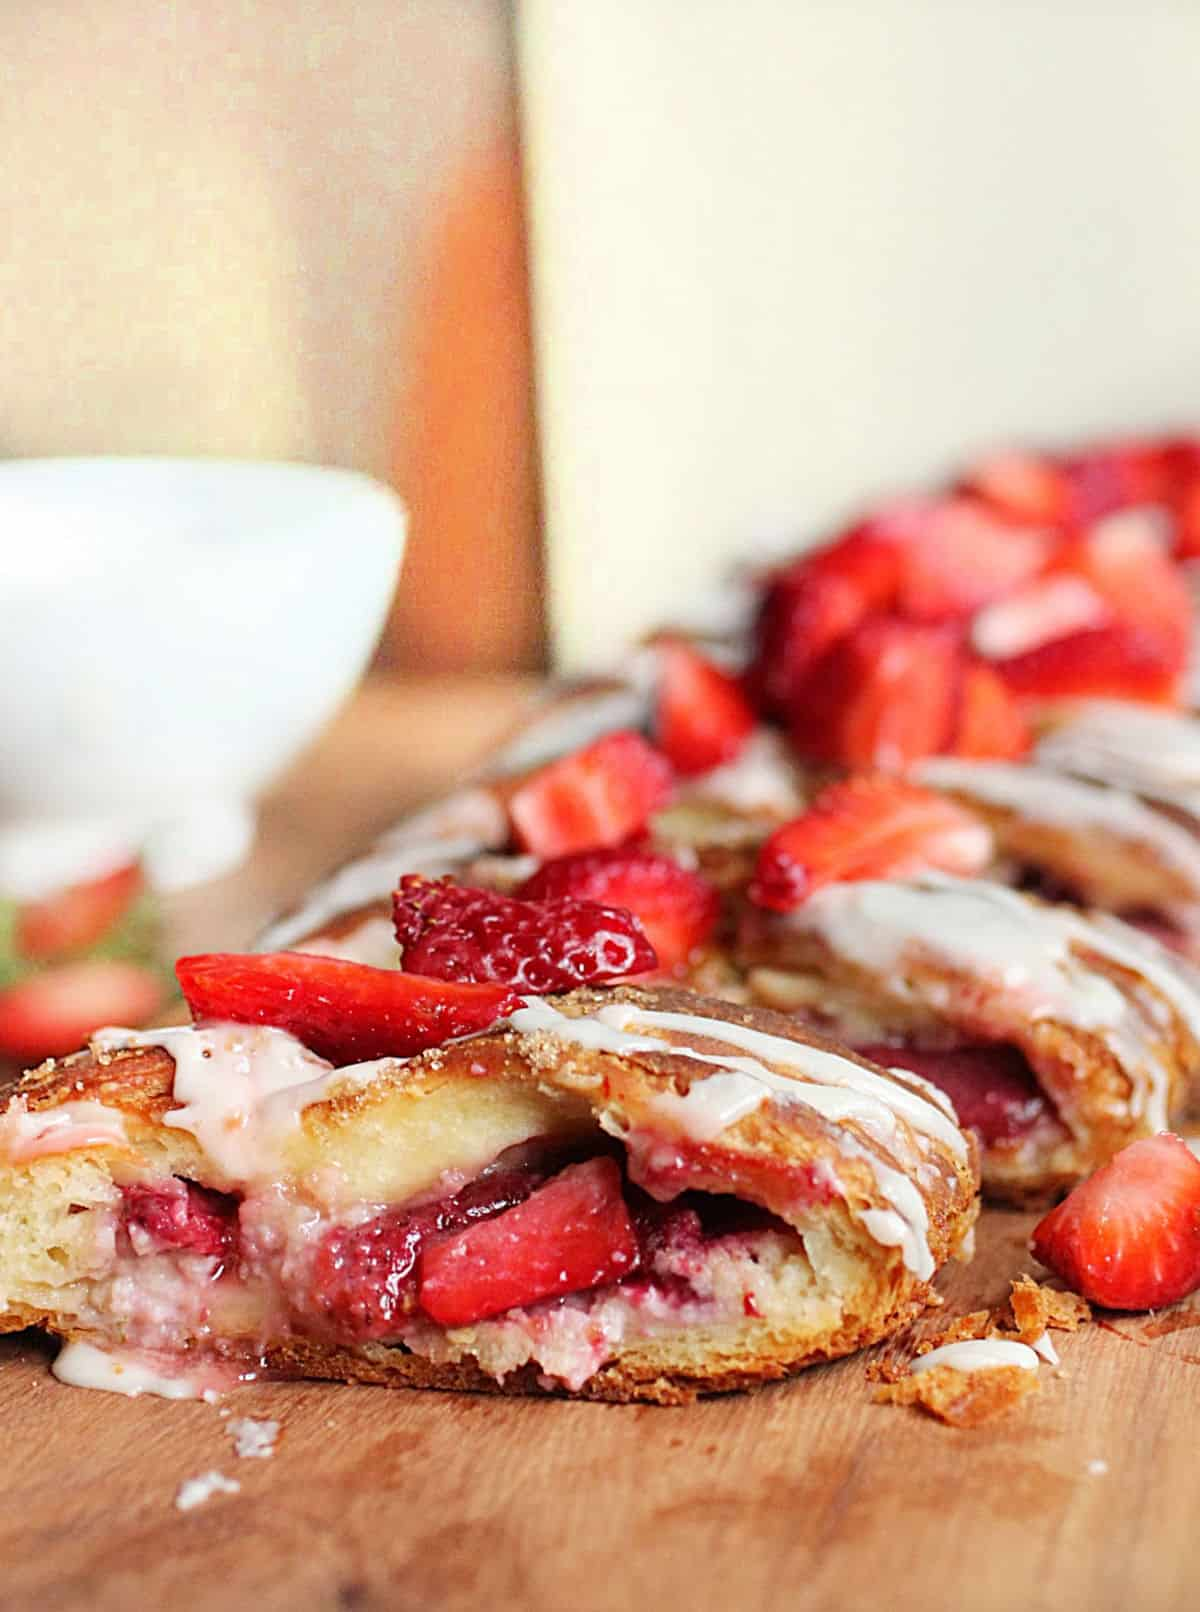 Sliced strawberry danish braid on wooden board, white bowl in background